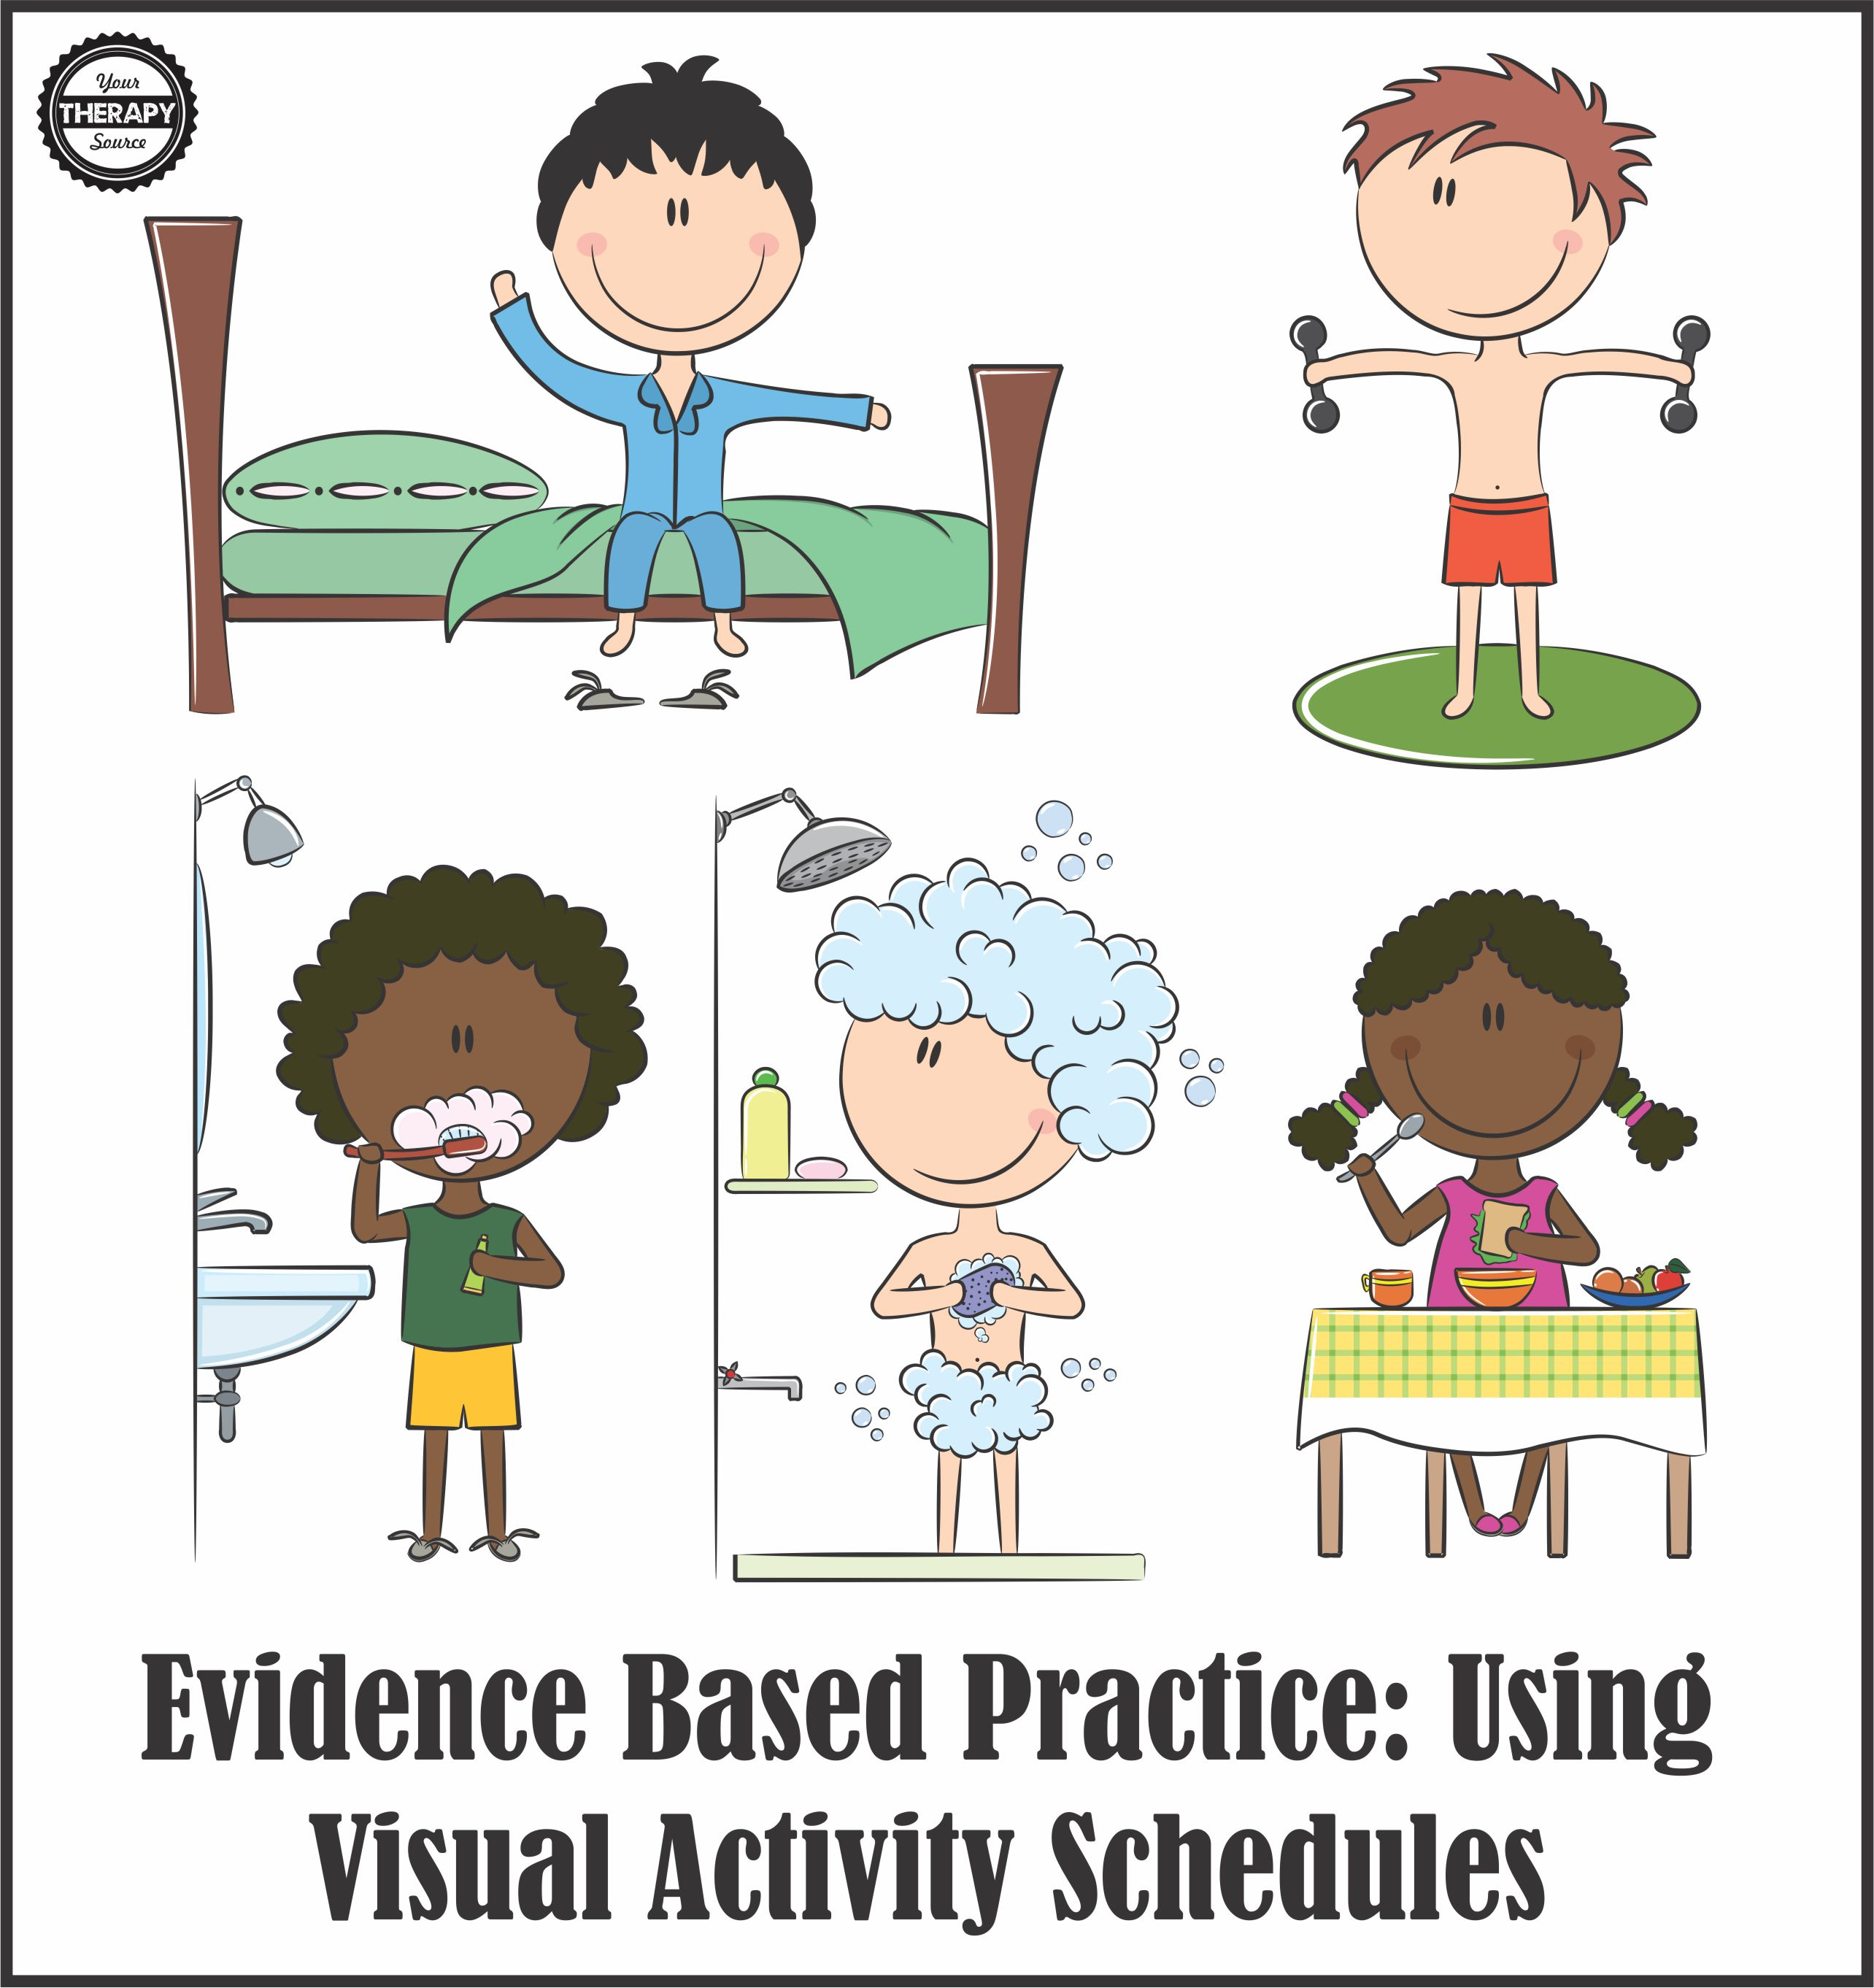 Evidence Based Practice Visual Activity Schedules